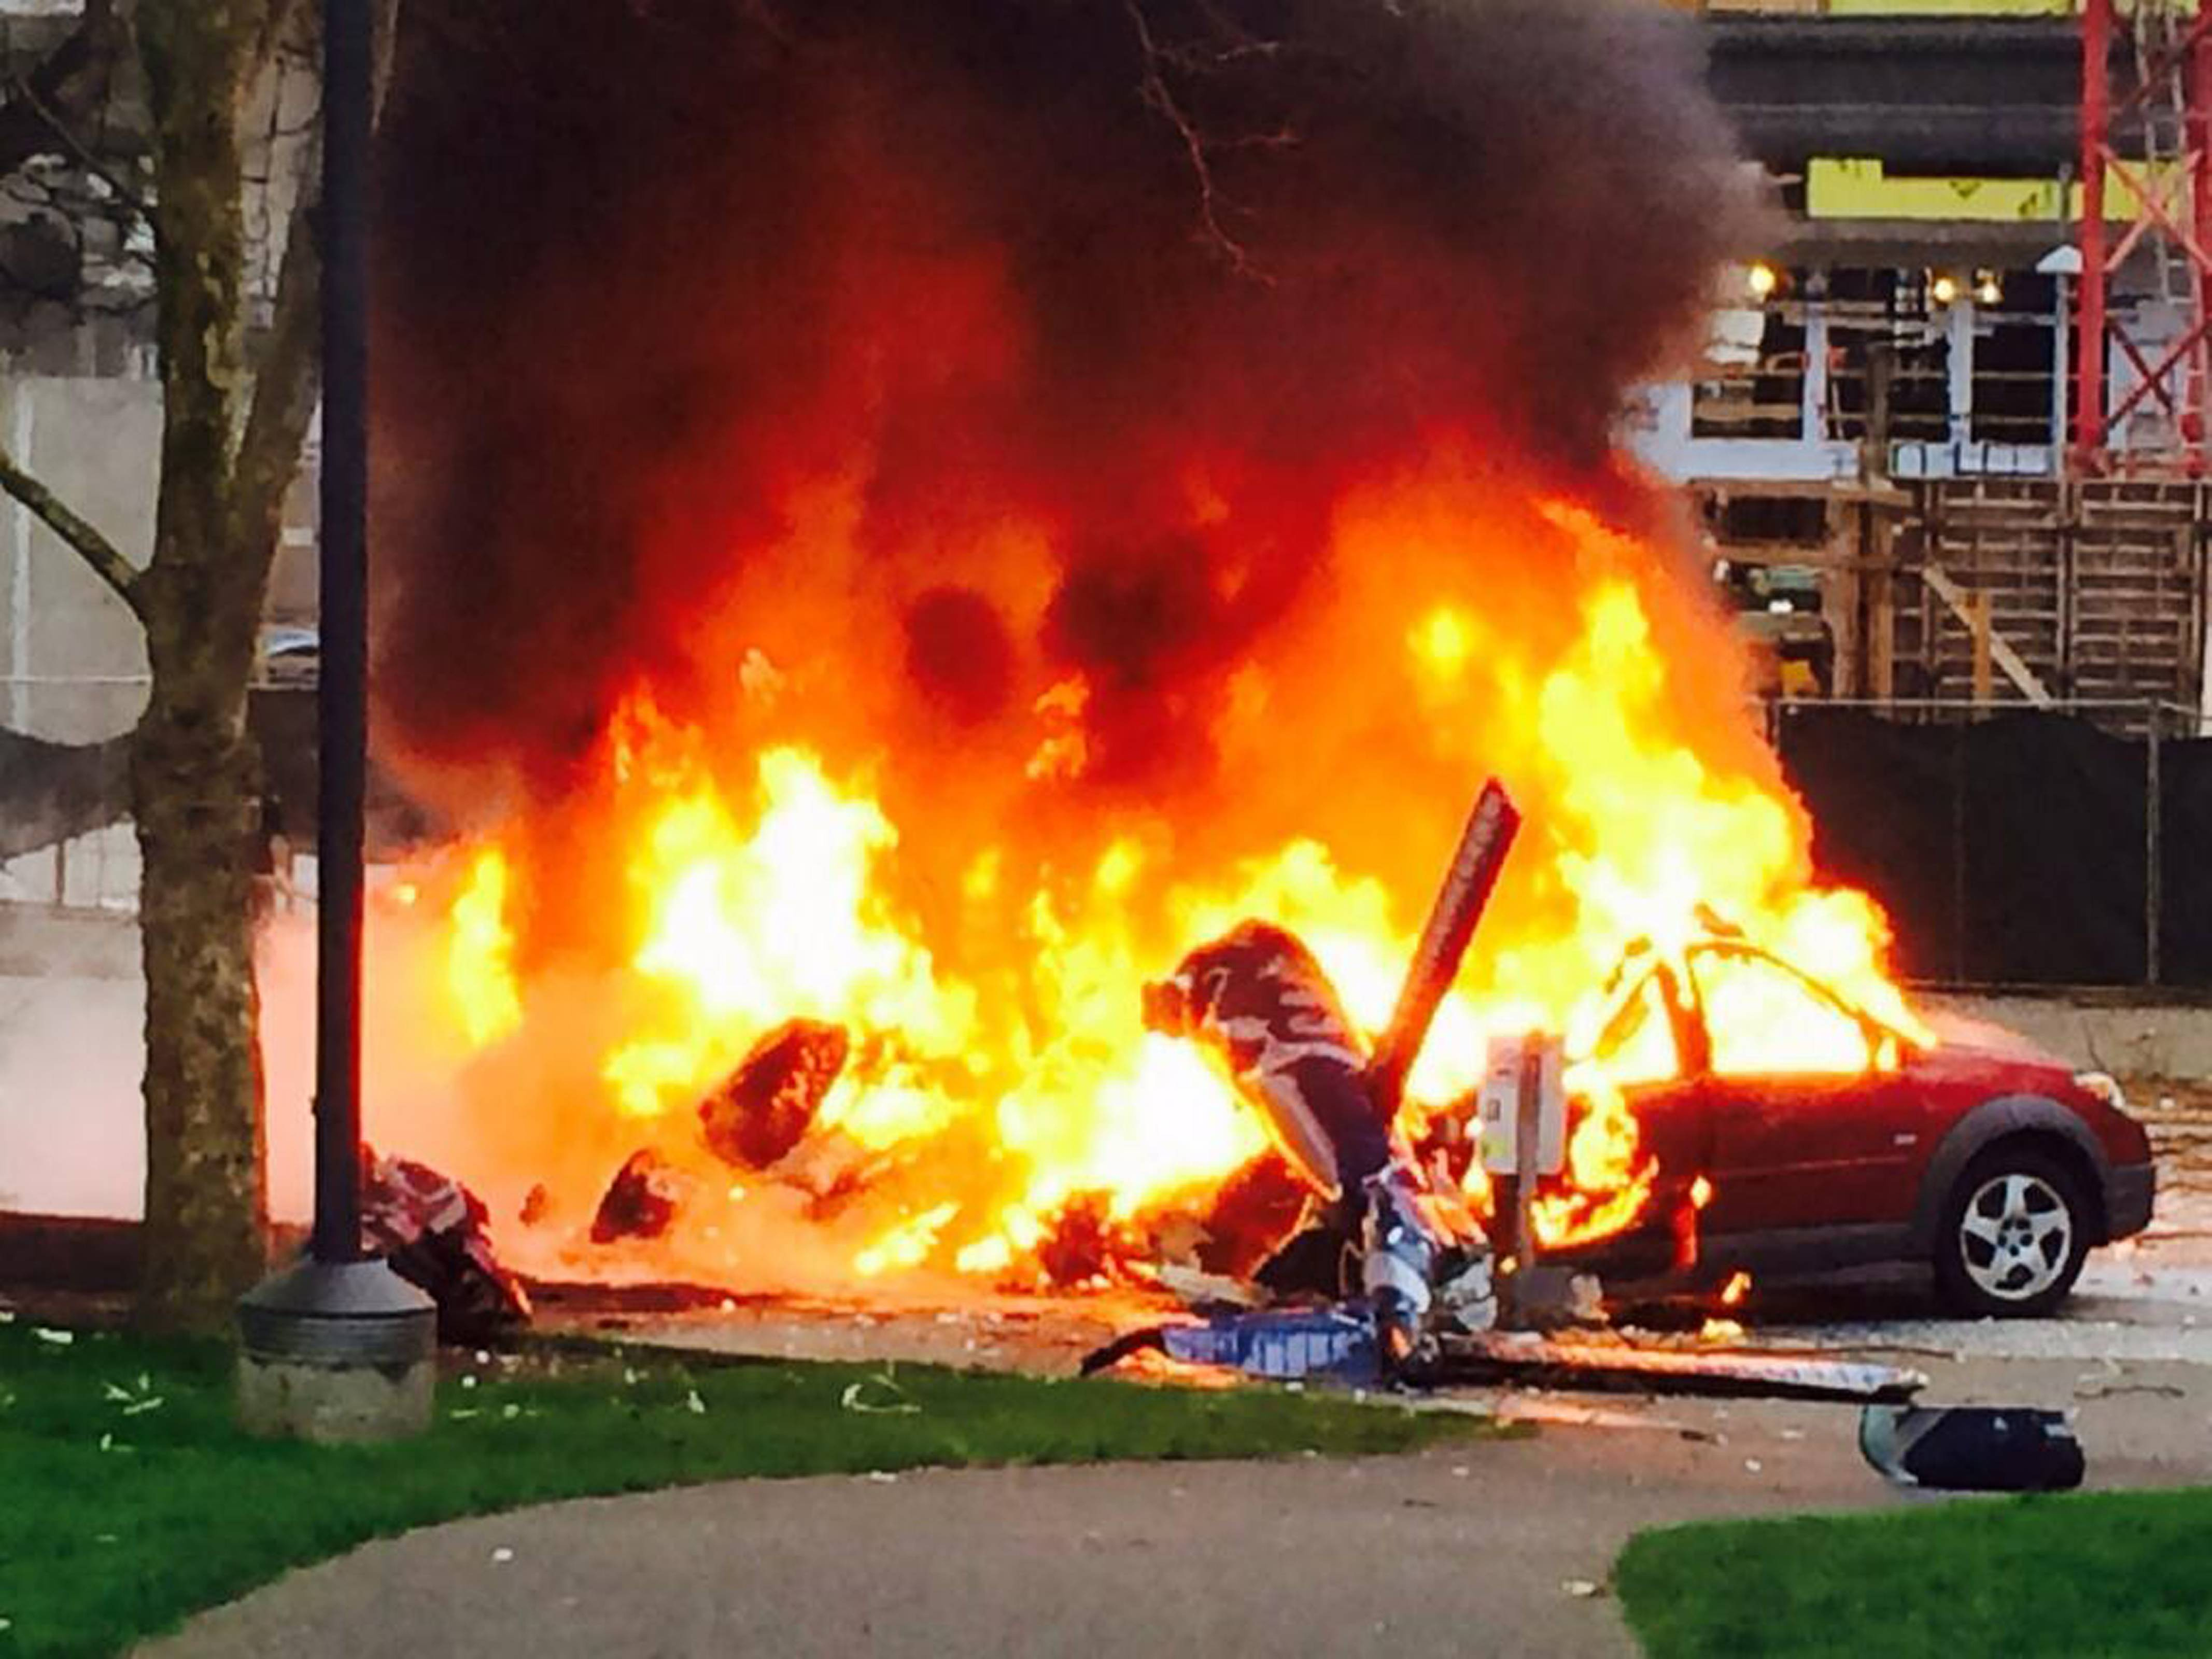 A car burns at the scene of a helicopter crash outside the KOMO-TV studios near the space needle in Seattle on Tuesday, March 18, 2014.